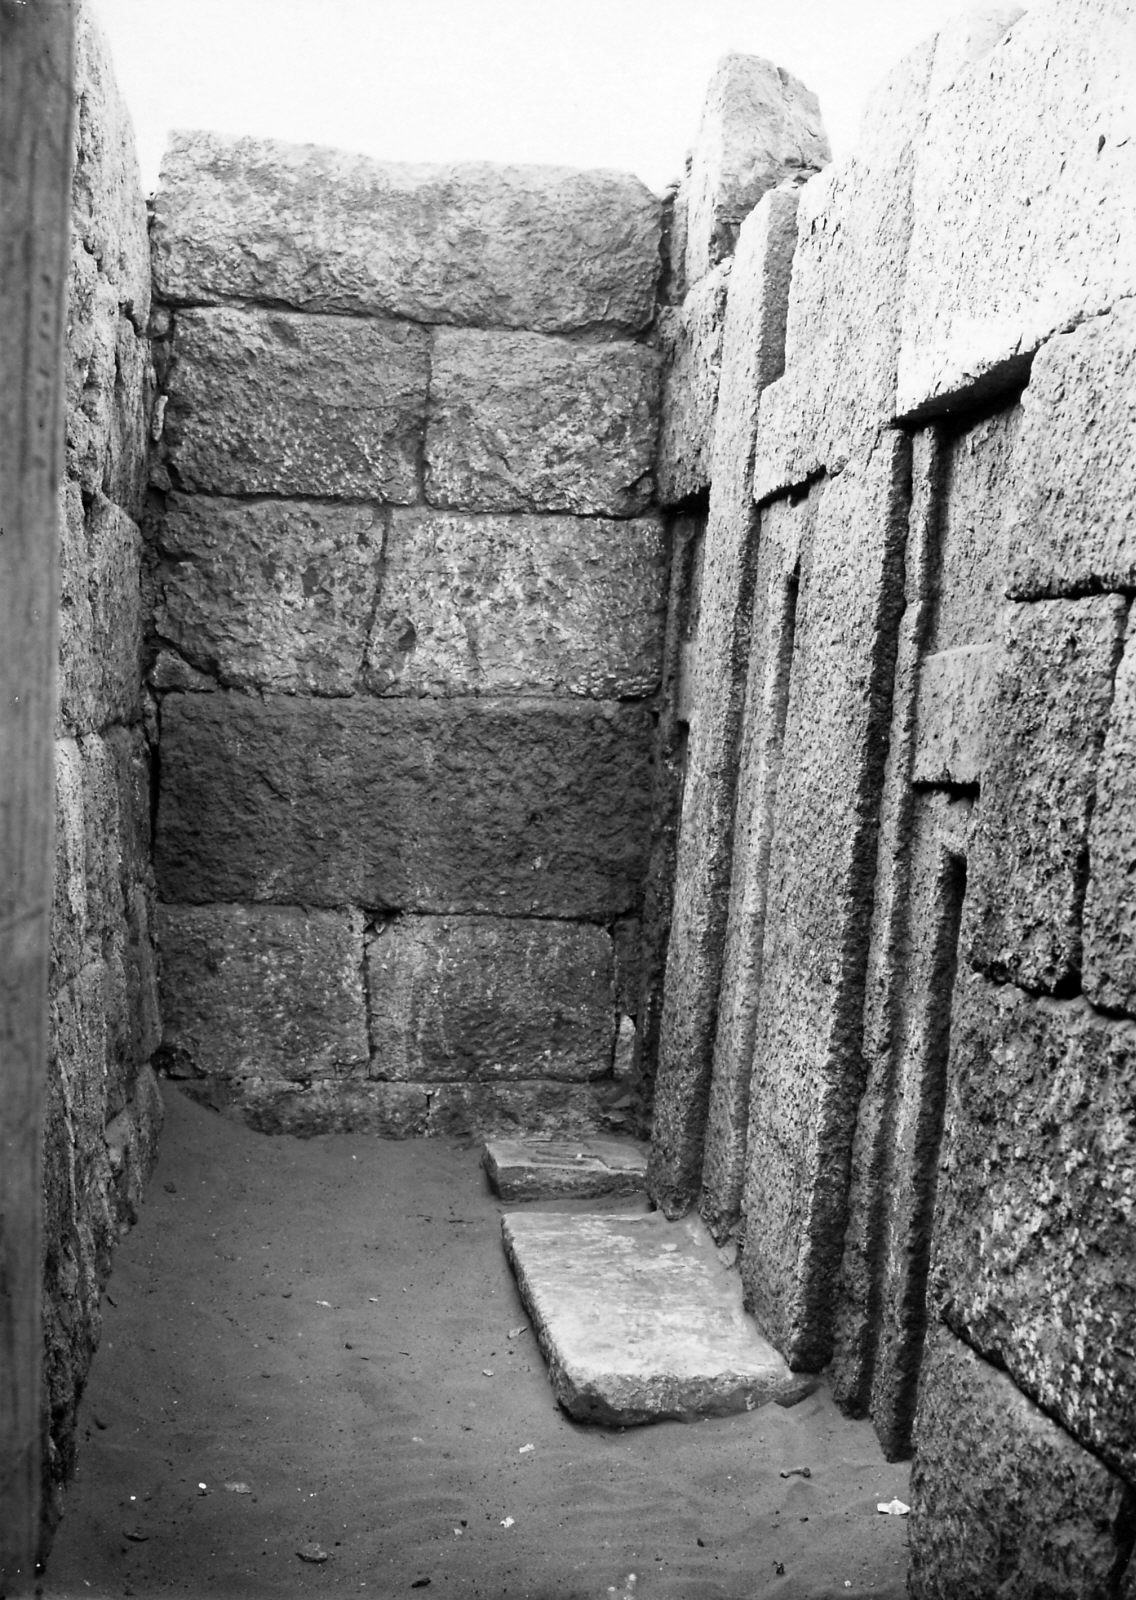 Mastaba of Inpuhetep, chapel, offering stone inscribed for Inpuhetep (Hildesheim RPM_3042) in situ in front of southern false door, looking south. Photo ID KHM_AEOS_II_2815, photo and description courtesy of the Giza Archives maintained by Harvard University and the Museum of Fine Arts Boston, online at Digital Giza.